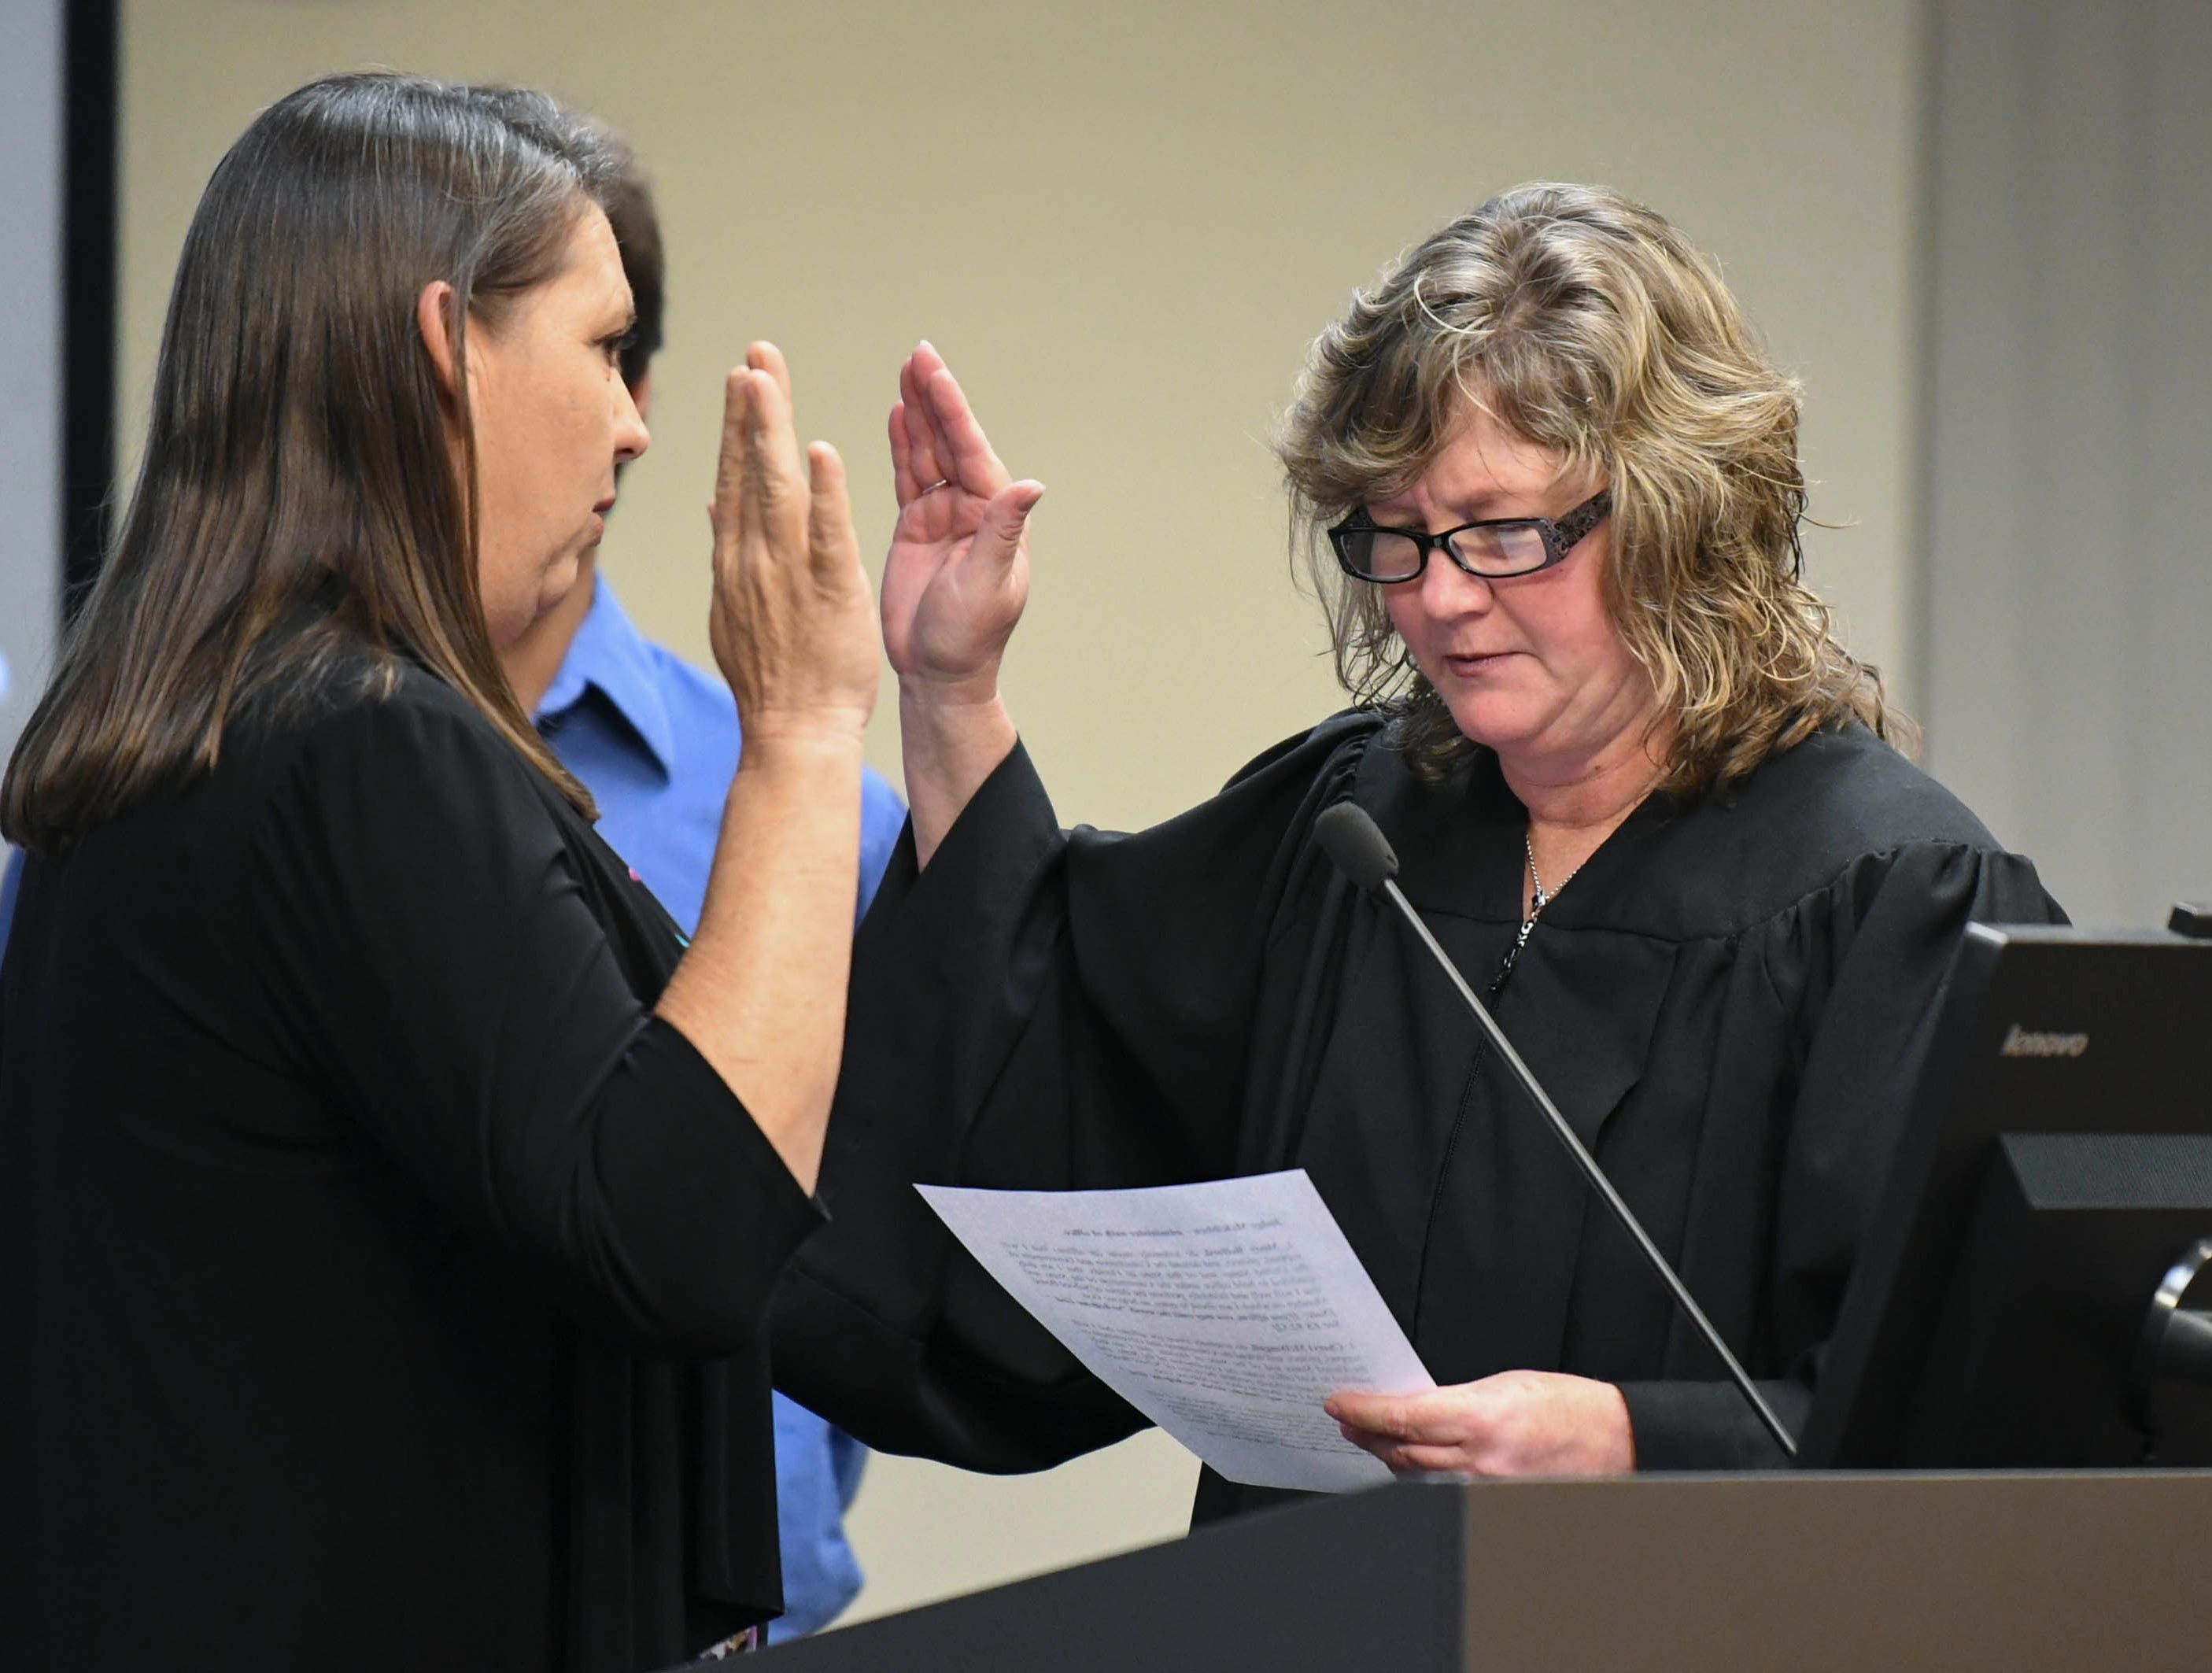 Judge Kelly McKibben swears in Misty Belford as a returning member of the Brevard County School Board during Tuesday's meeting in Viera.